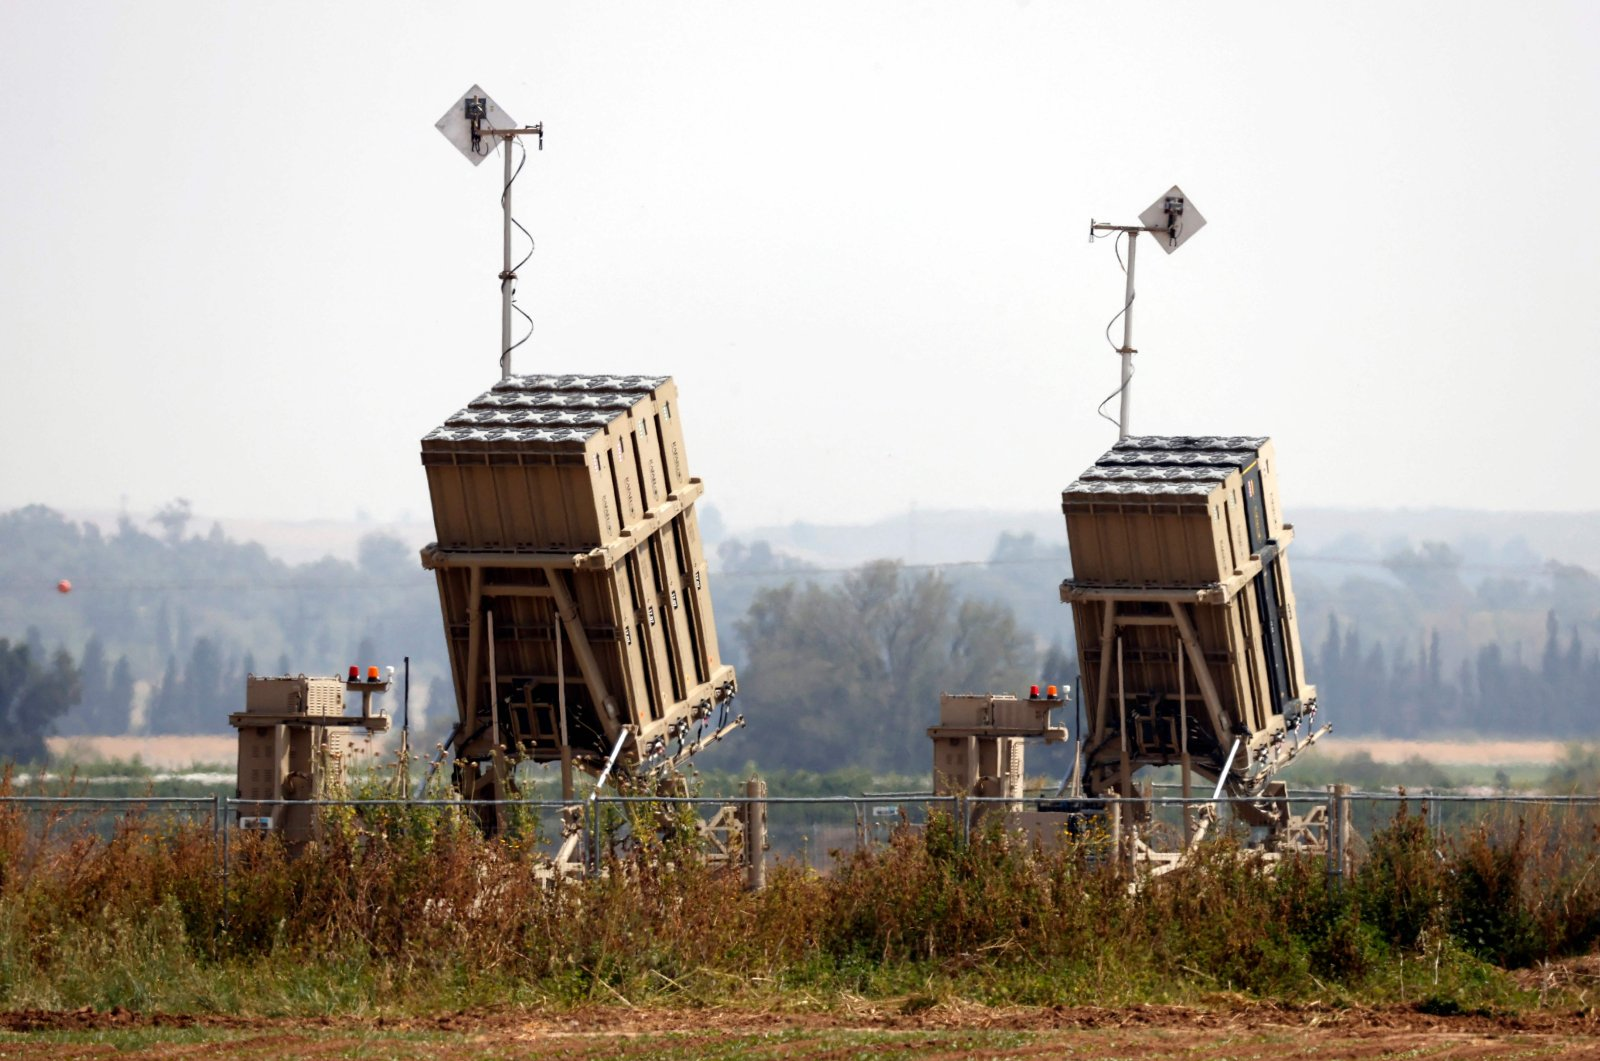 Iron Dome defense missile systems, designed to intercept and destroy incoming short-range rockets and artillery shells, are pictured in the city of Sderot, Israel, April 24, 2021. (AFP Photo)